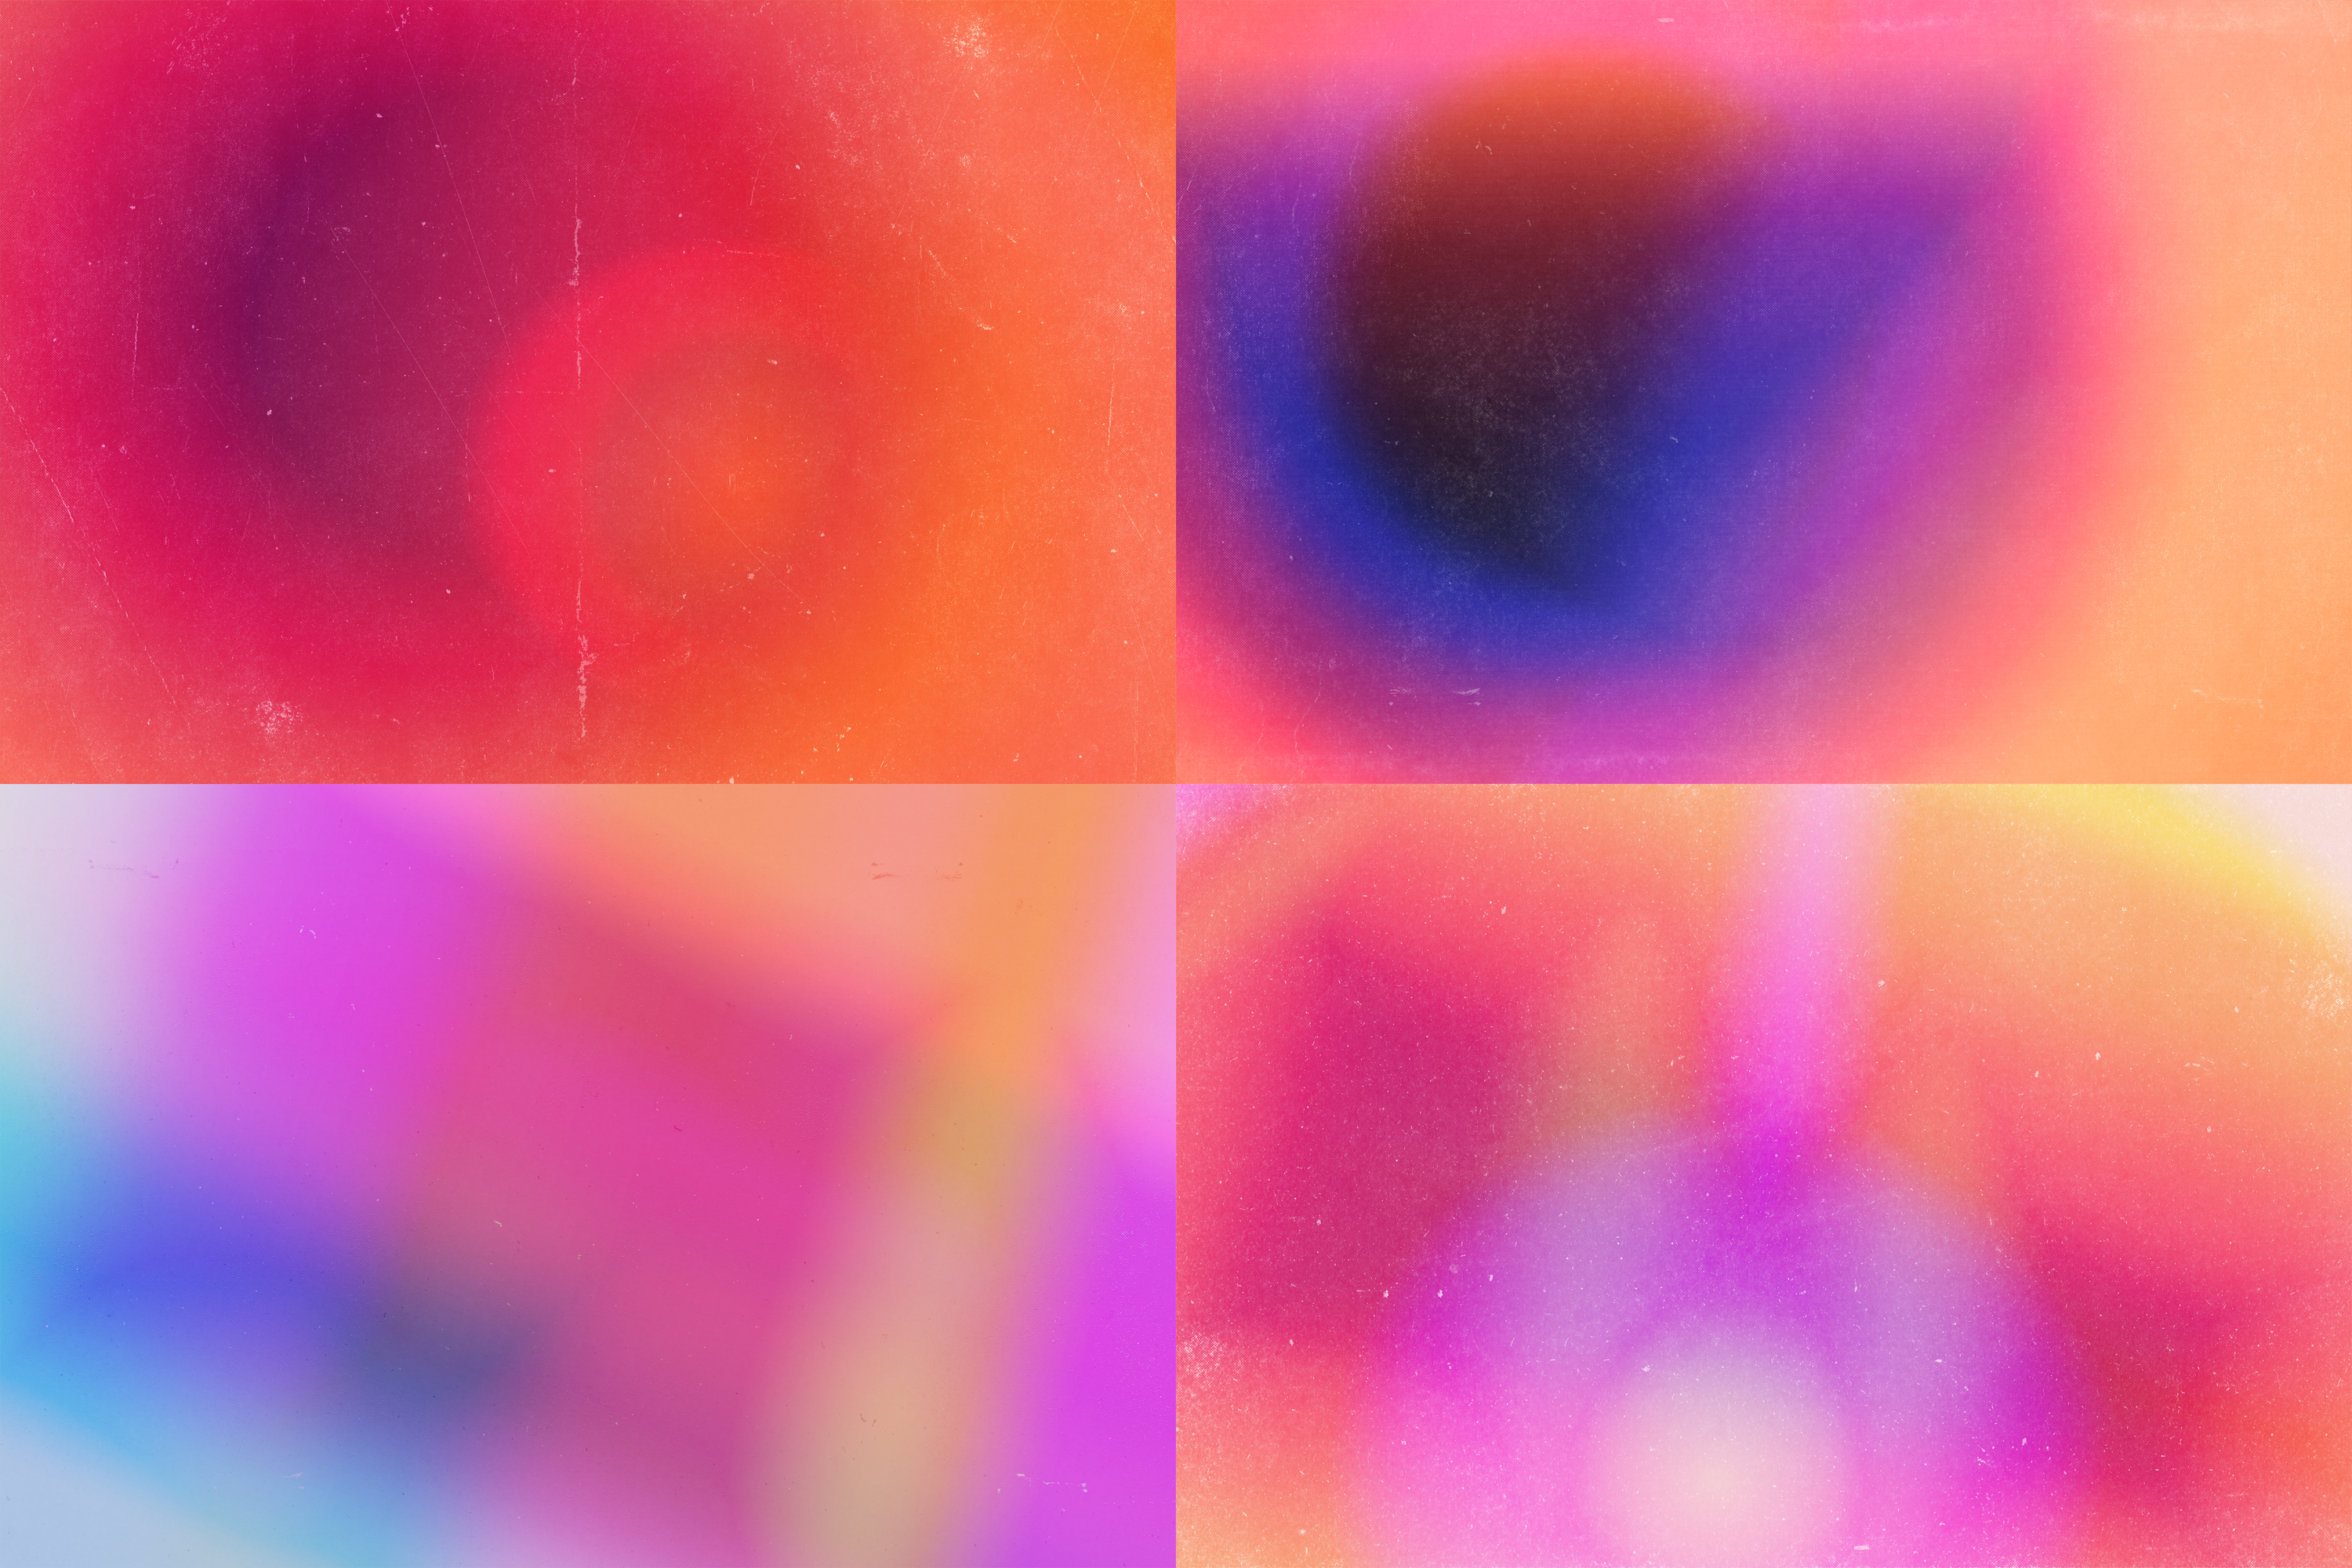 Faded - 15 Abstract Backgrounds Pack example image 6